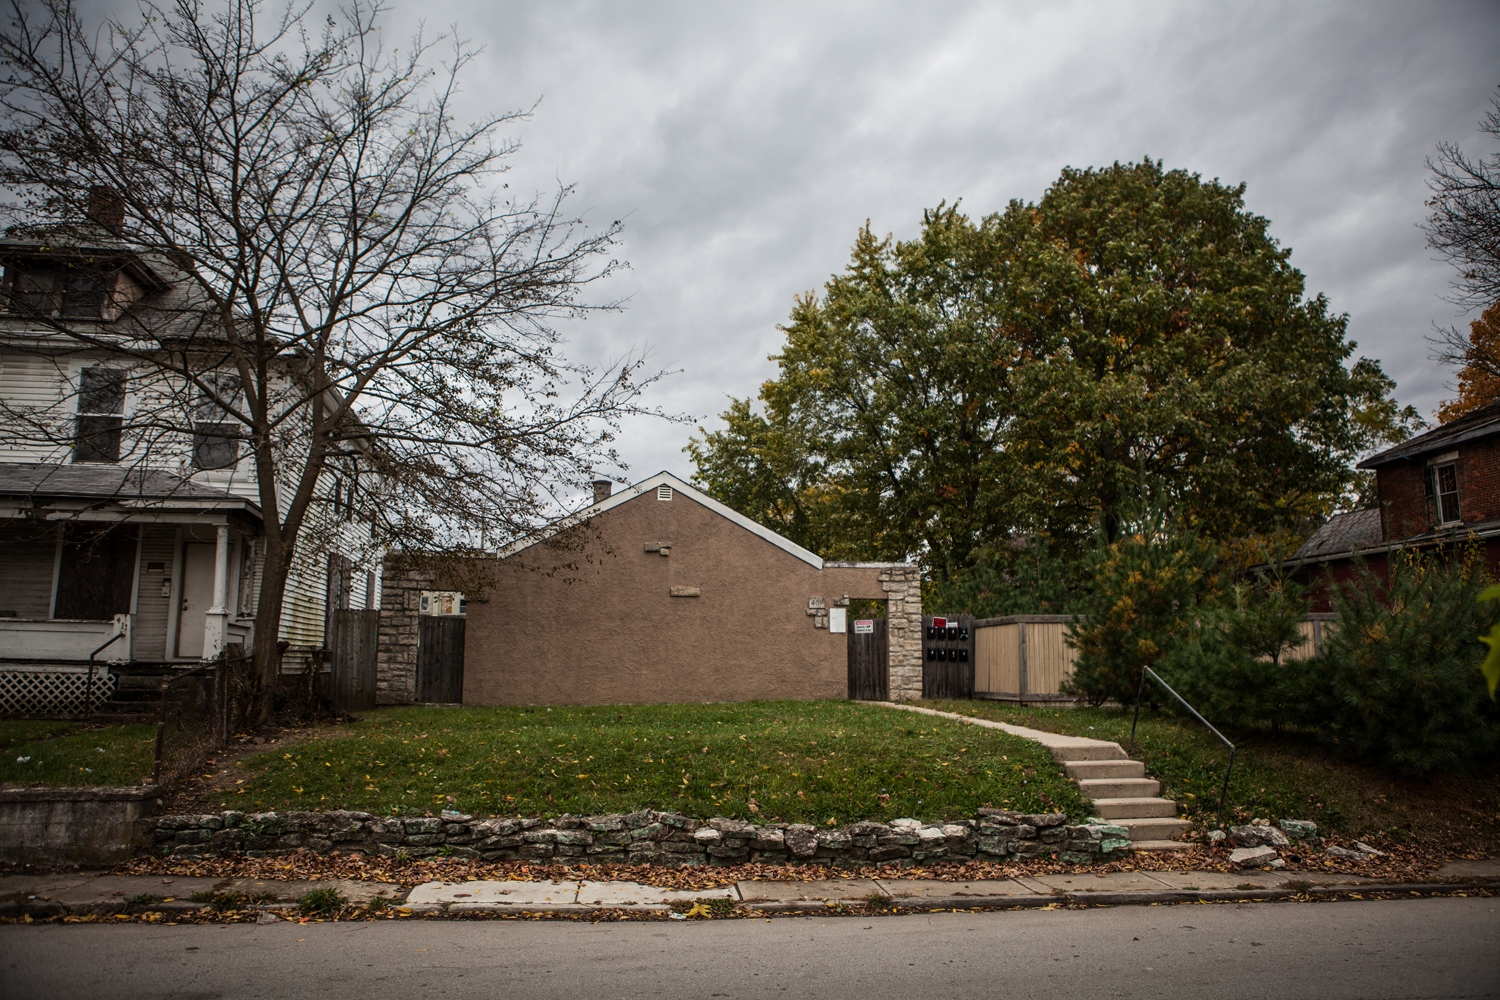 "A house on Ryan Street in The Bottoms neighborhood of Columbus, Ohio, where Jennifer Kempton, 32, was trafficked for over a year in 2009 and 2010. ""Living there was horrible. The apartments were rented out to dope boys and I was expected to make money to supply our addiction from those dope boys being pregnant and all,"" Jennifer said. ""My memories of that place are of misery and horror"".  Jennifer now comes about once a month to The Bottoms to do outreach, talk to women, give them hygiene bags and let them know that there is help."